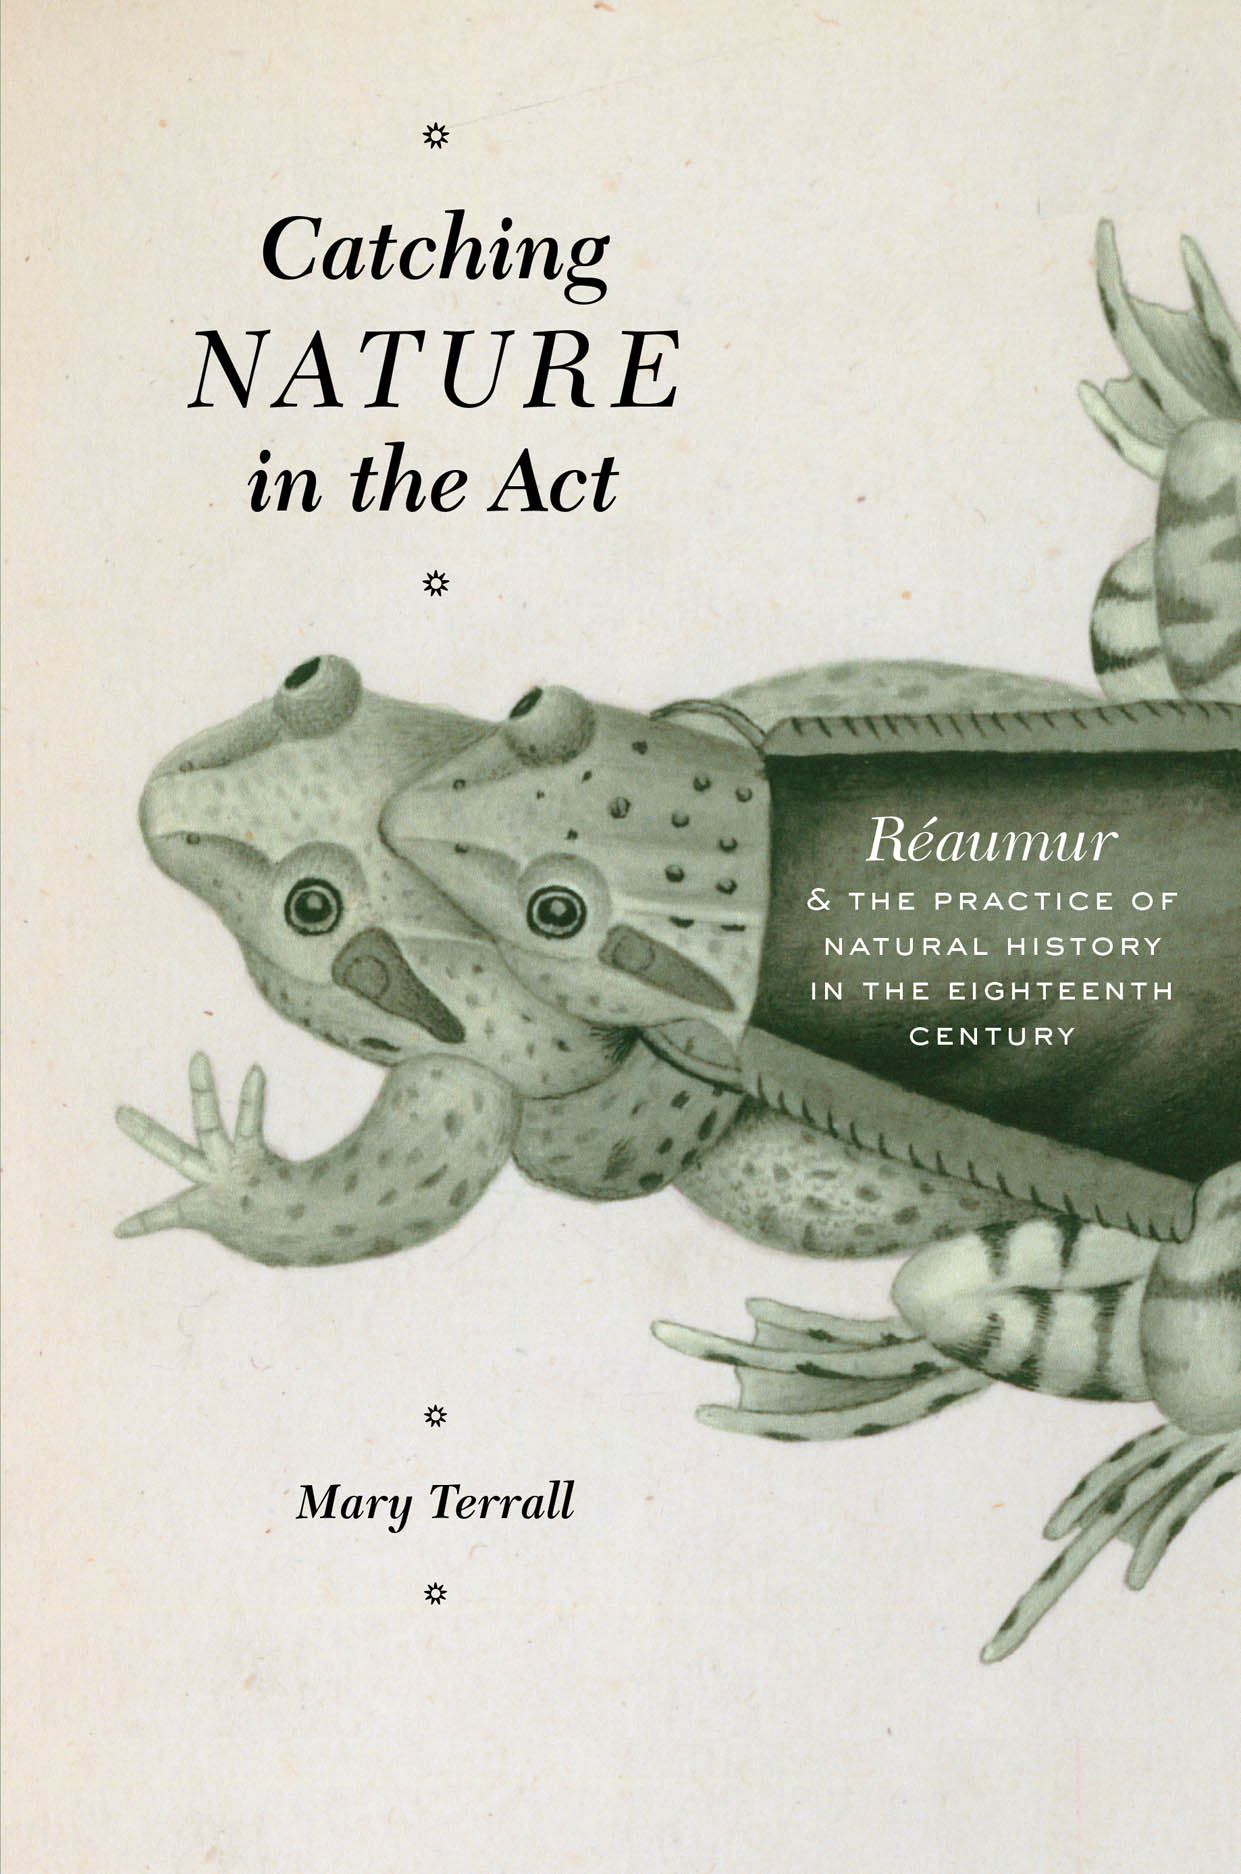 Catching Nature in the Act: Réaumur and the Practice of Natural History in the Eighteenth Century